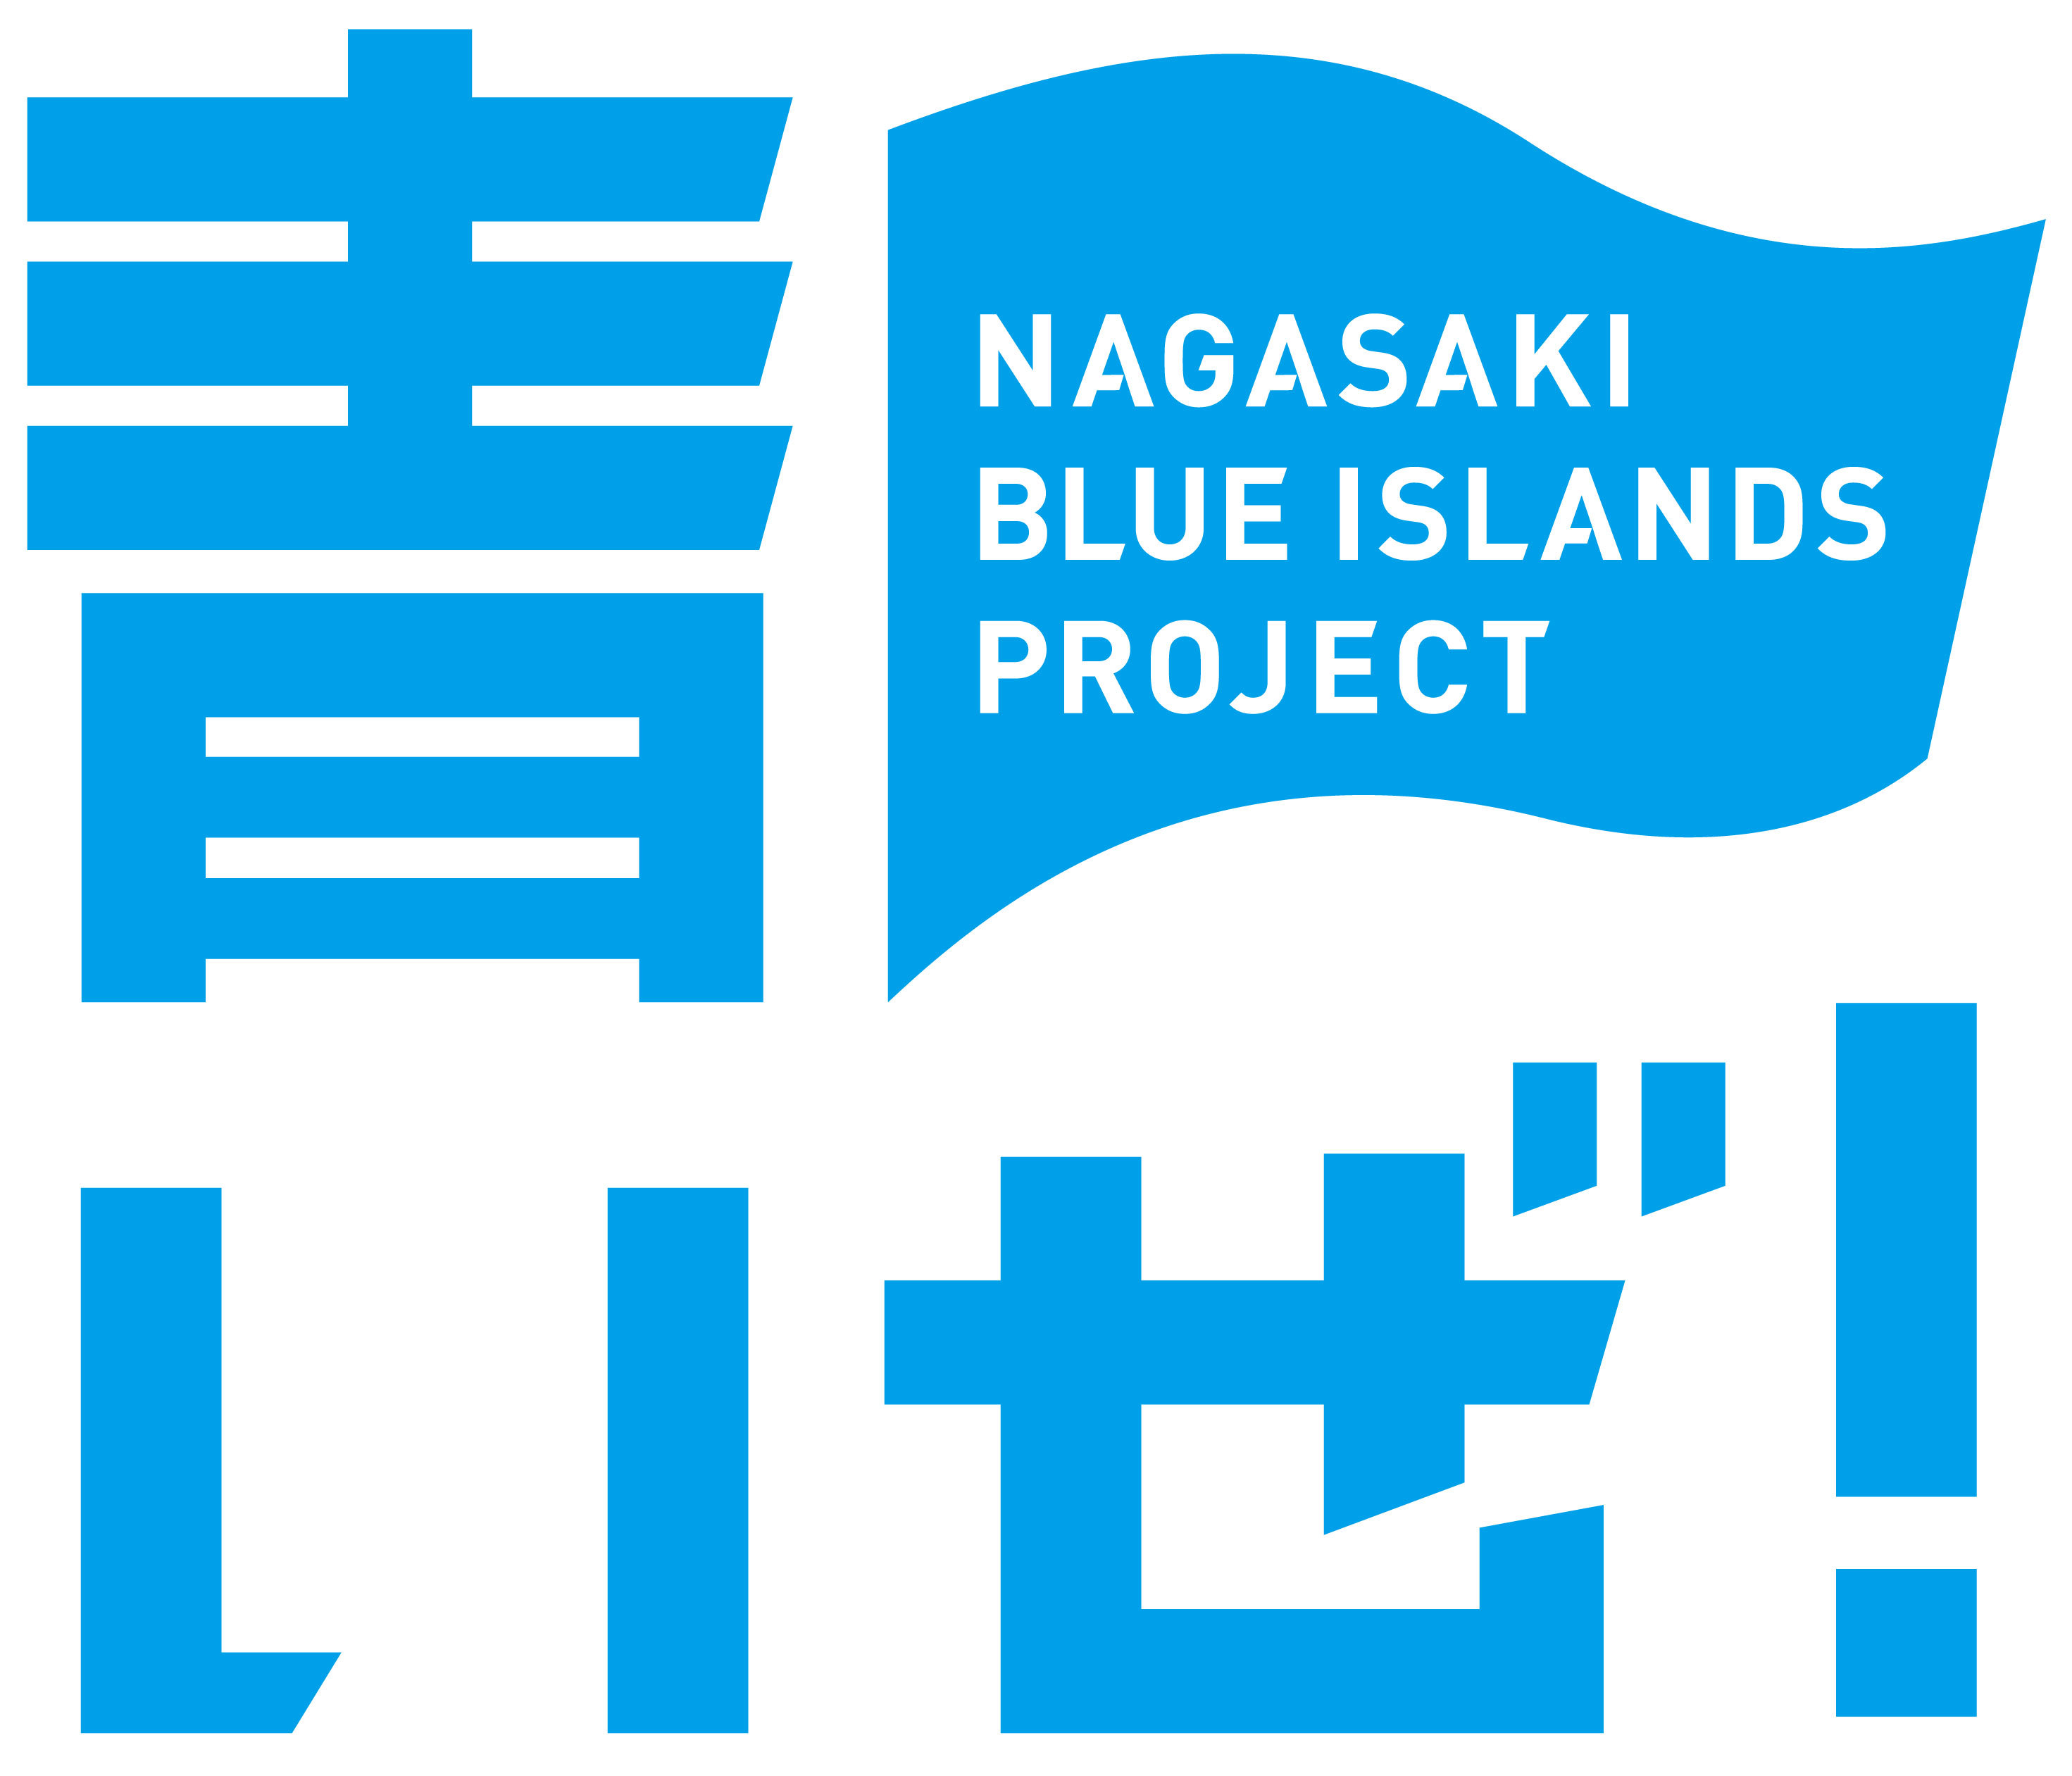 NAGASAKI BLUE ISLANDS PROJECT